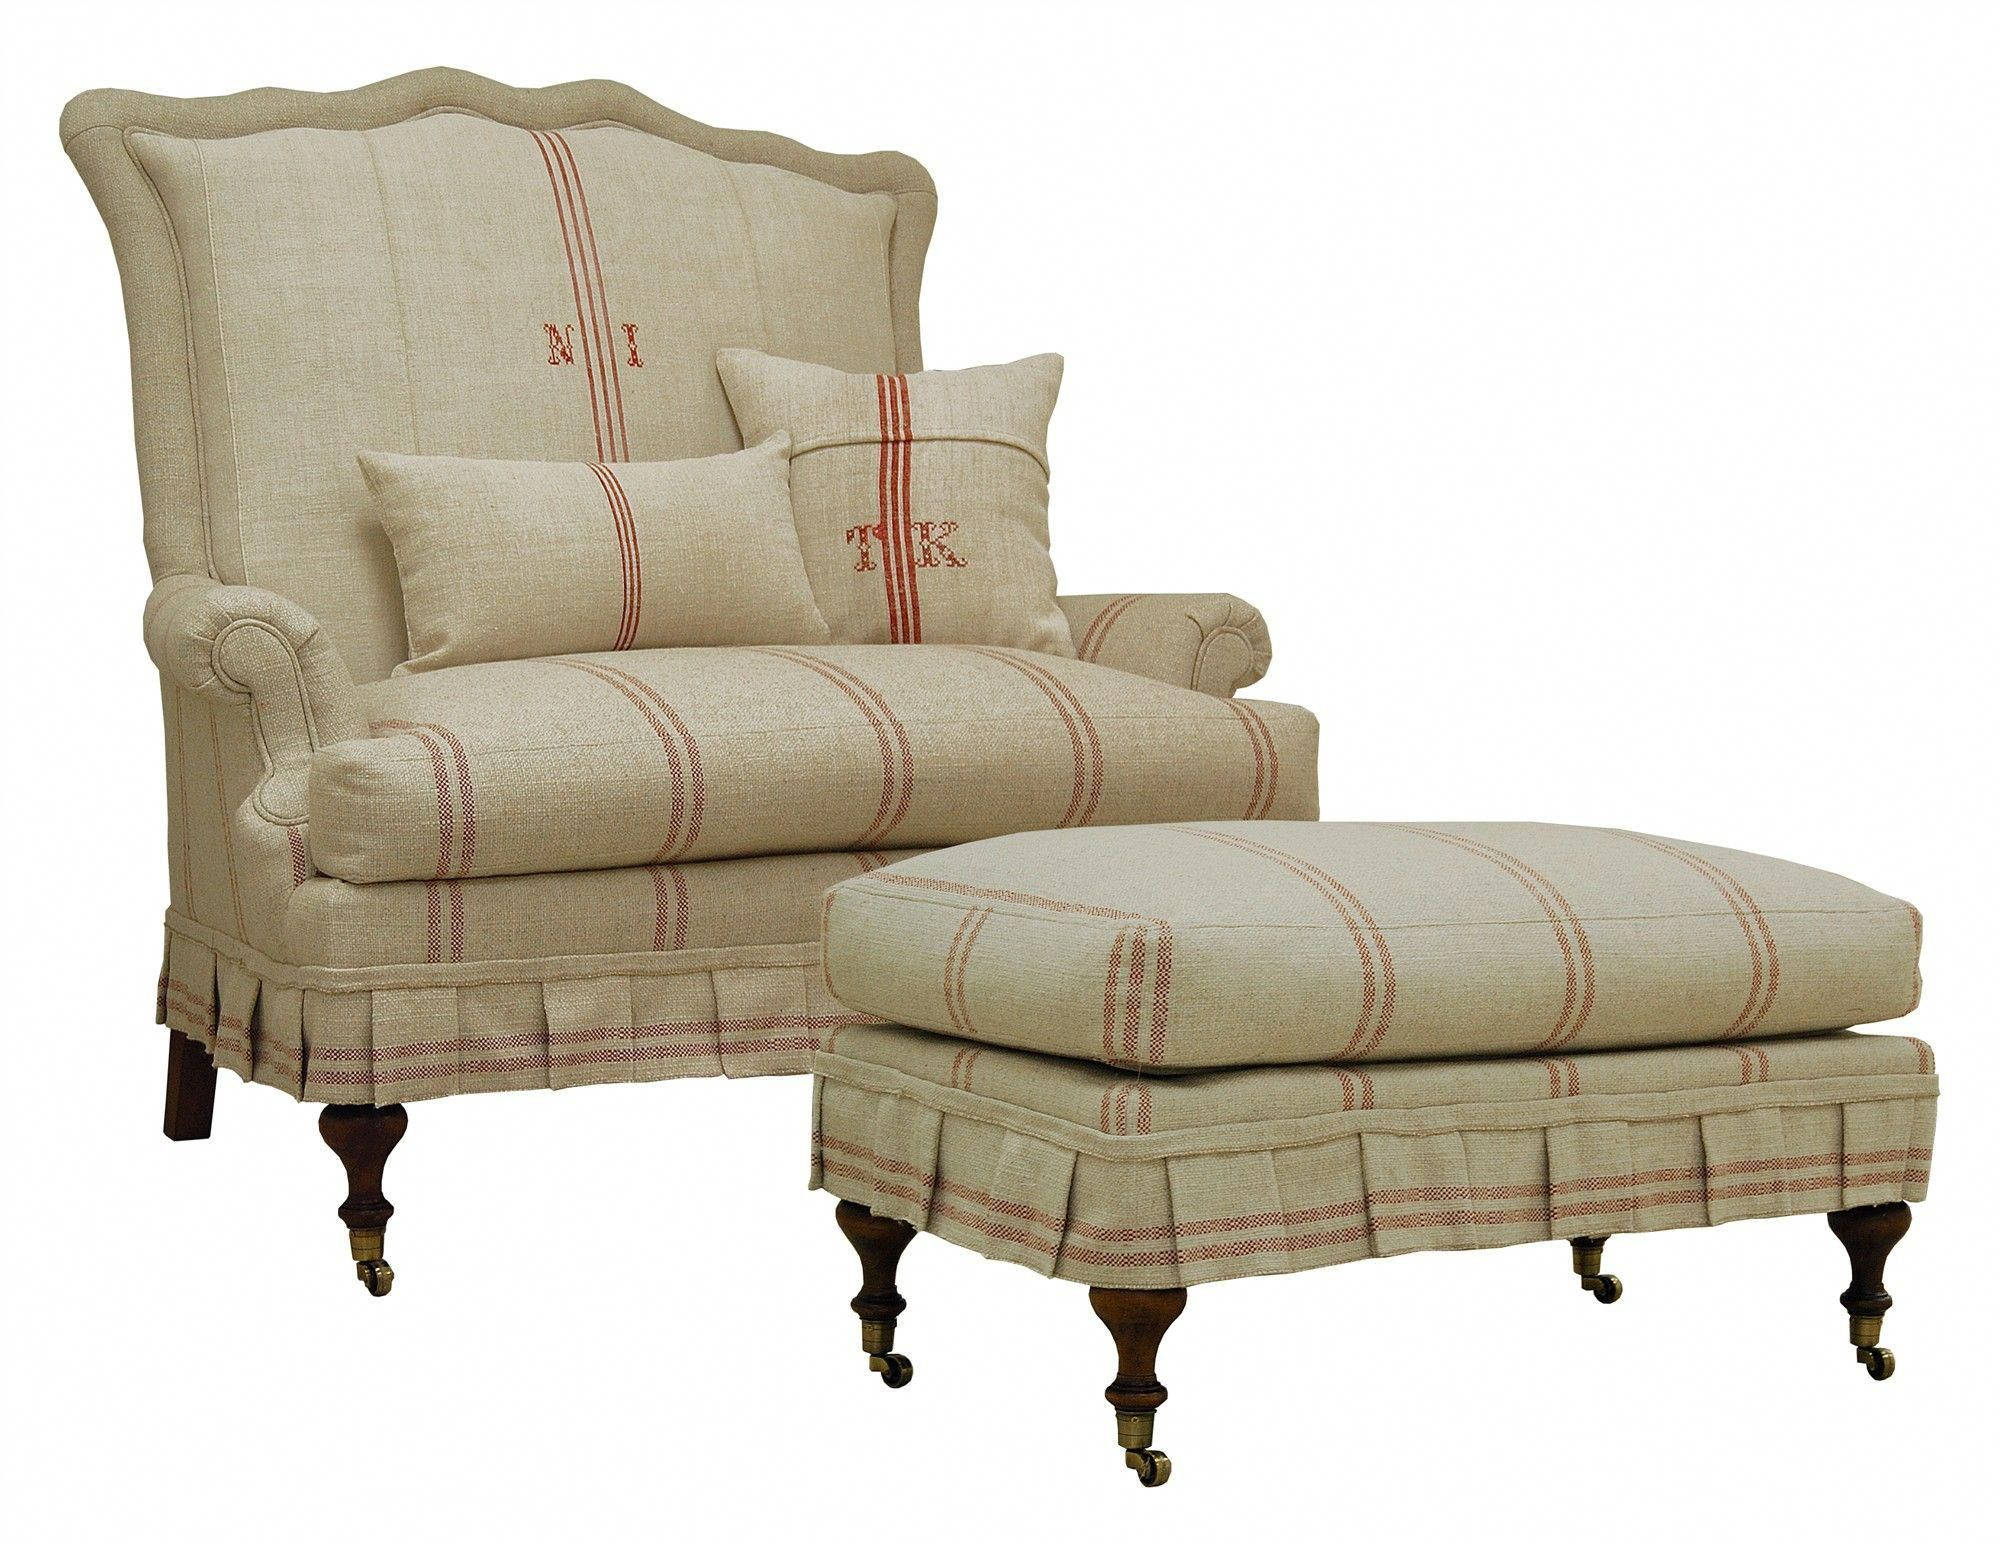 Shipping Furniture From India To Usa Id 4862875188 Furniture French Furniture Beautiful Furniture